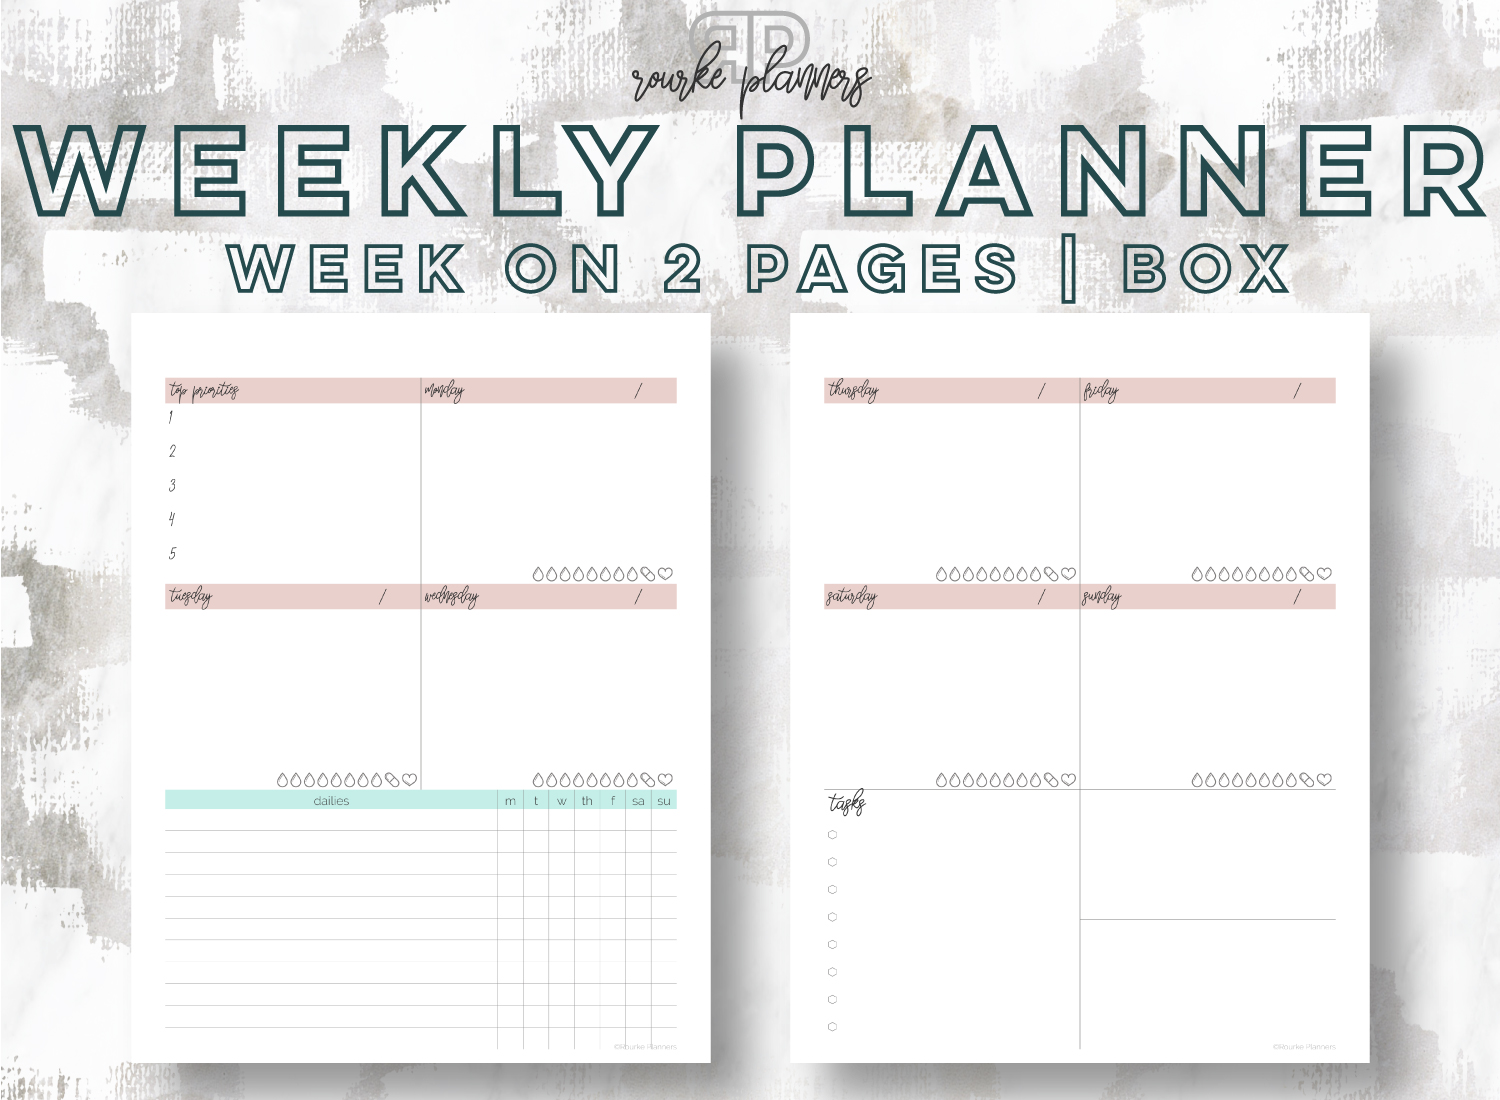 The Weekly Box Planner   Rourke Planners